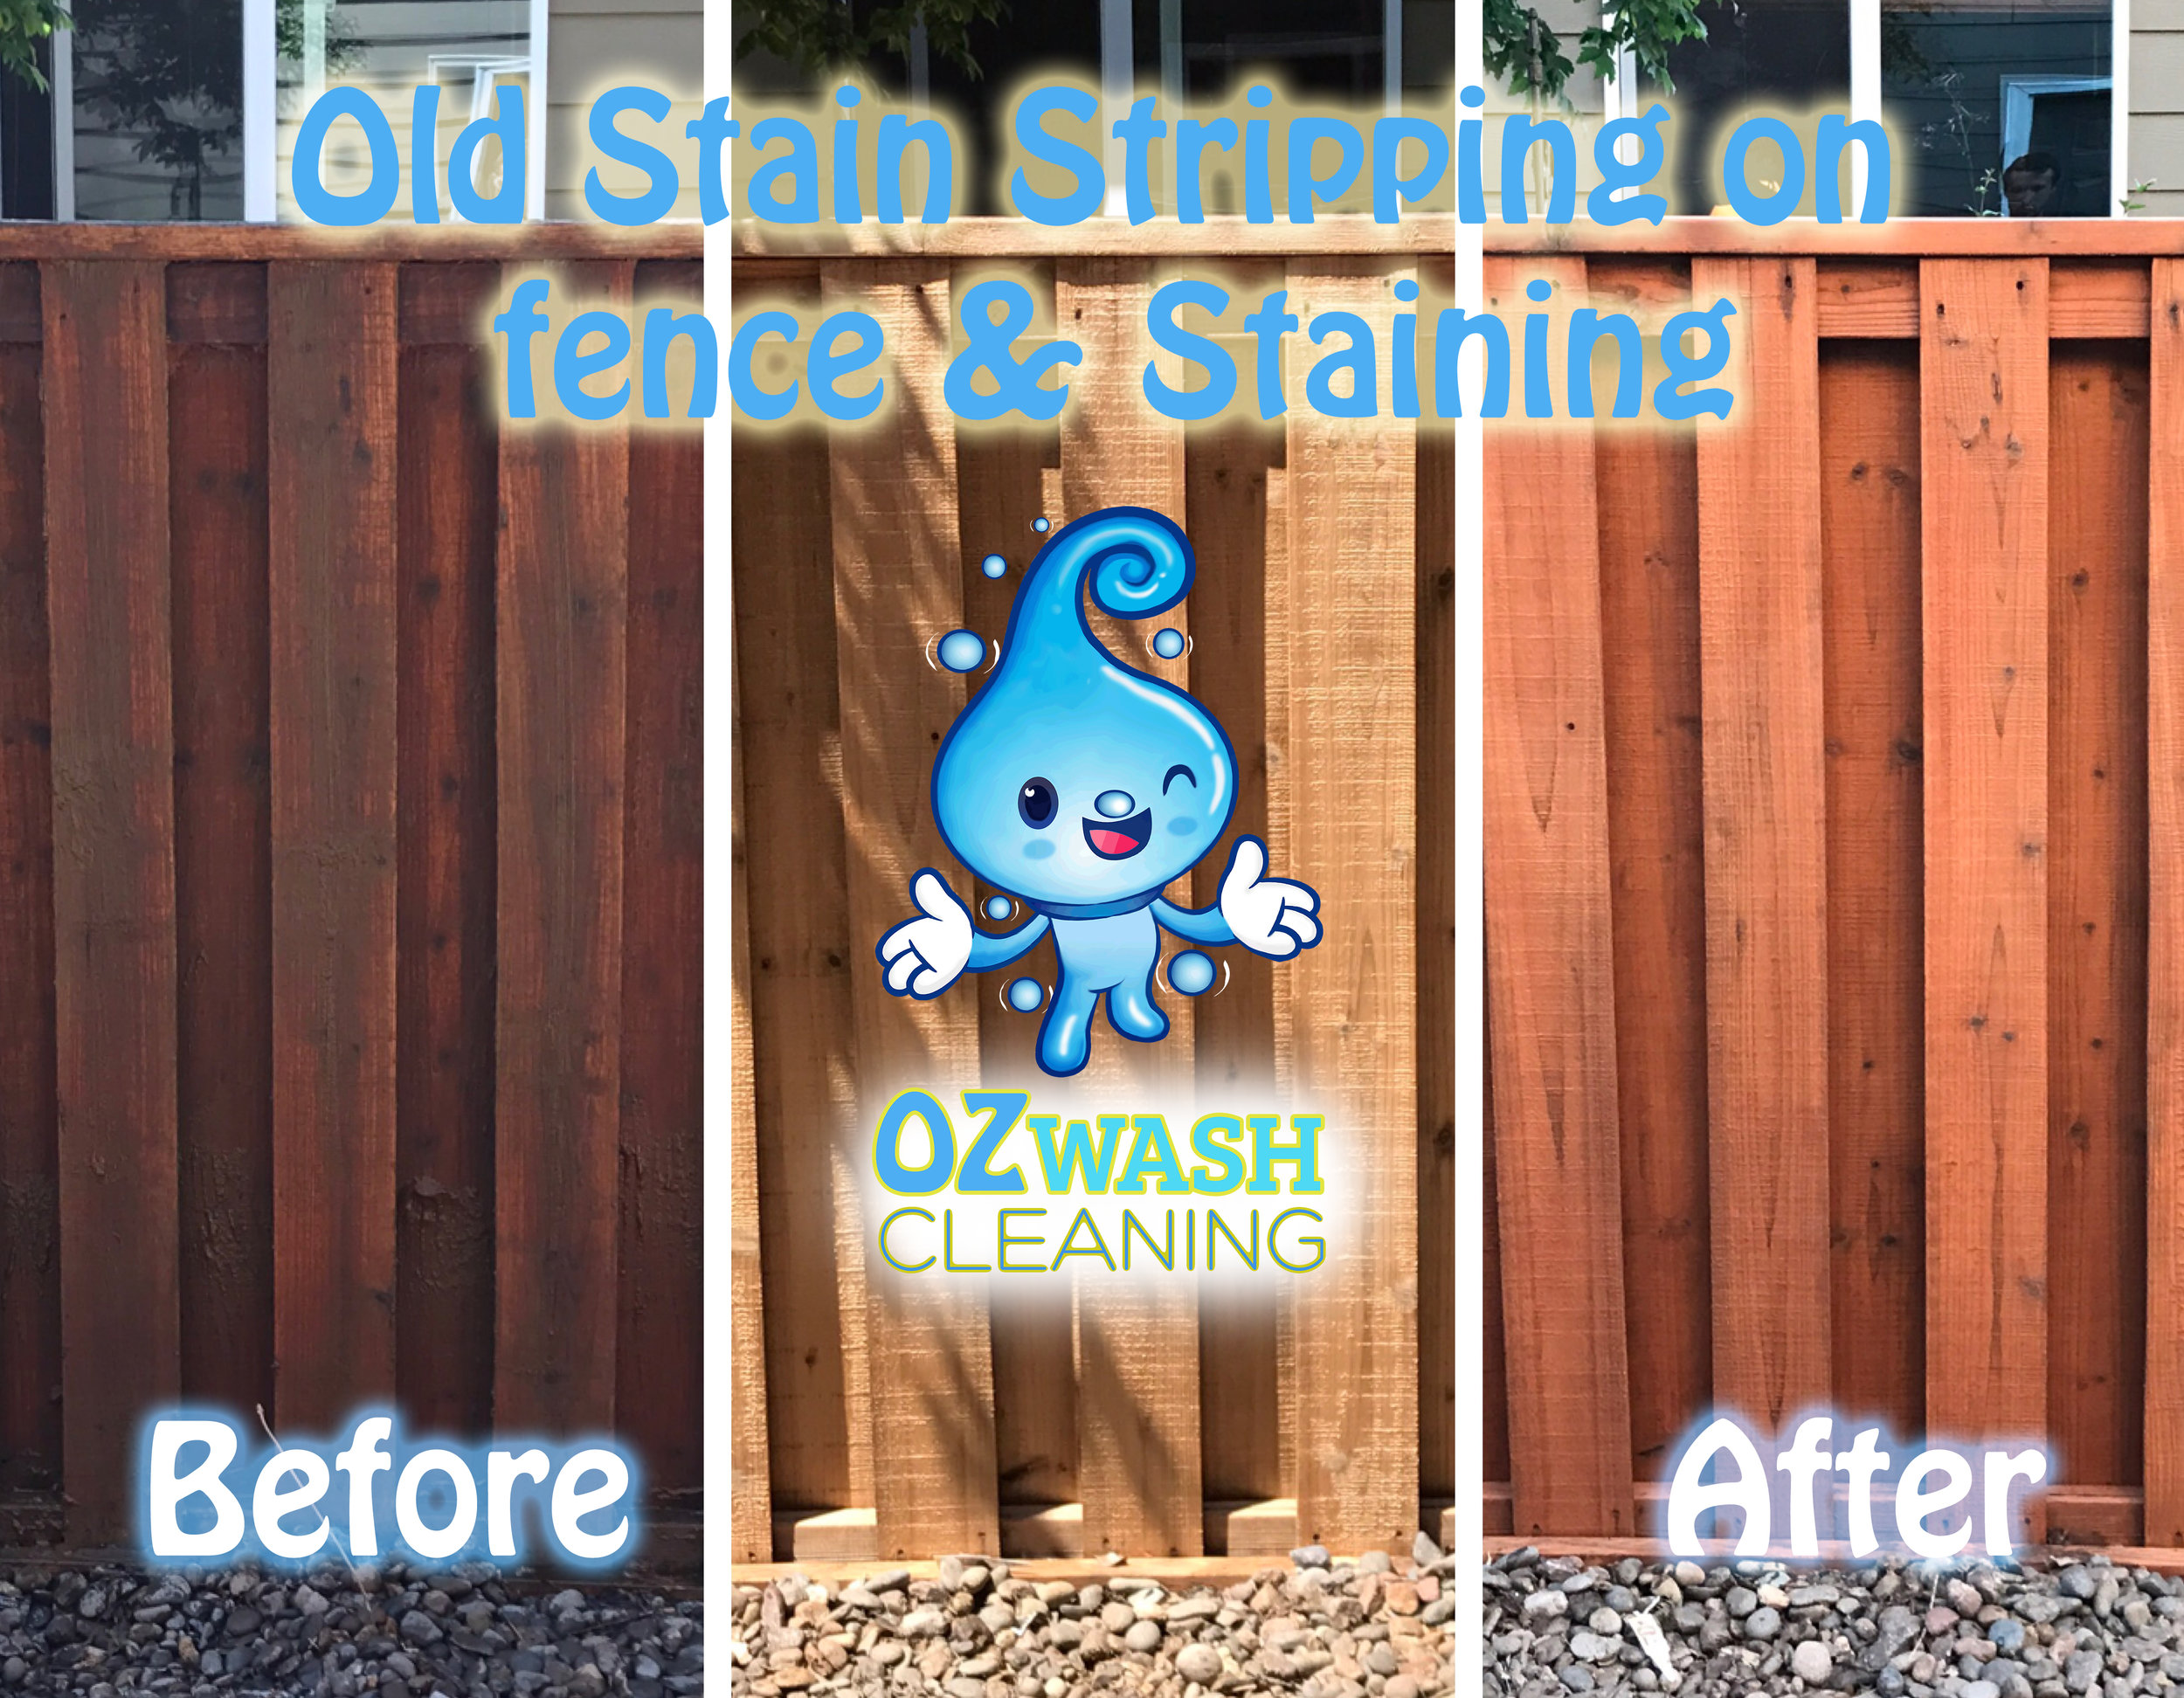 Old Stain Stripping2.jpg